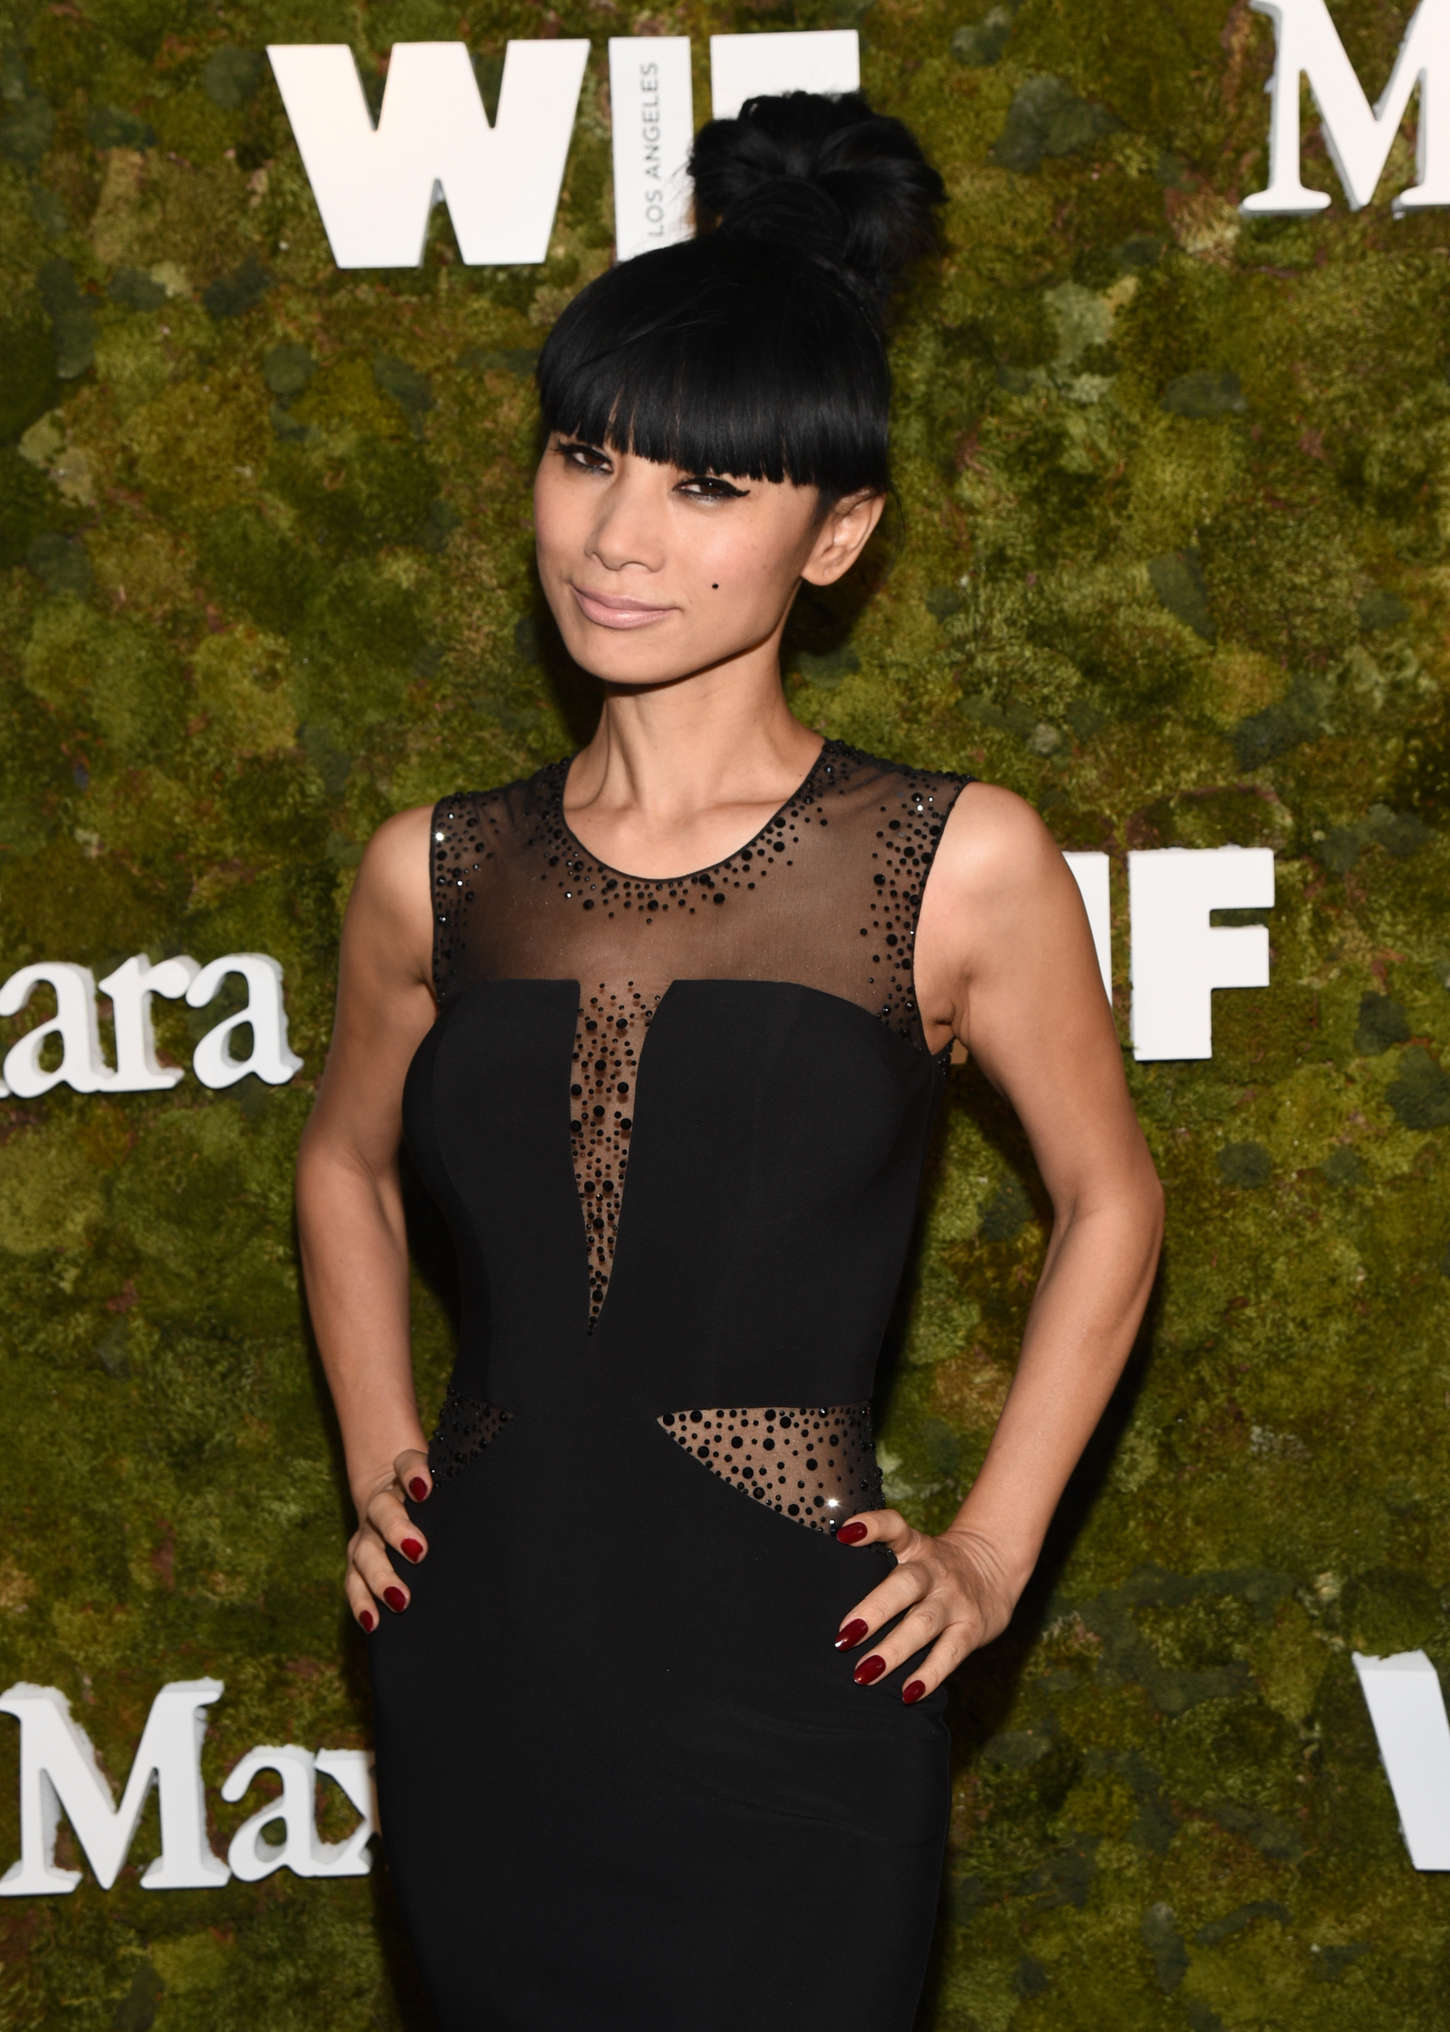 Bai Ling Max Mara Women In Film Face Of The Future Award Event in West Hollywood